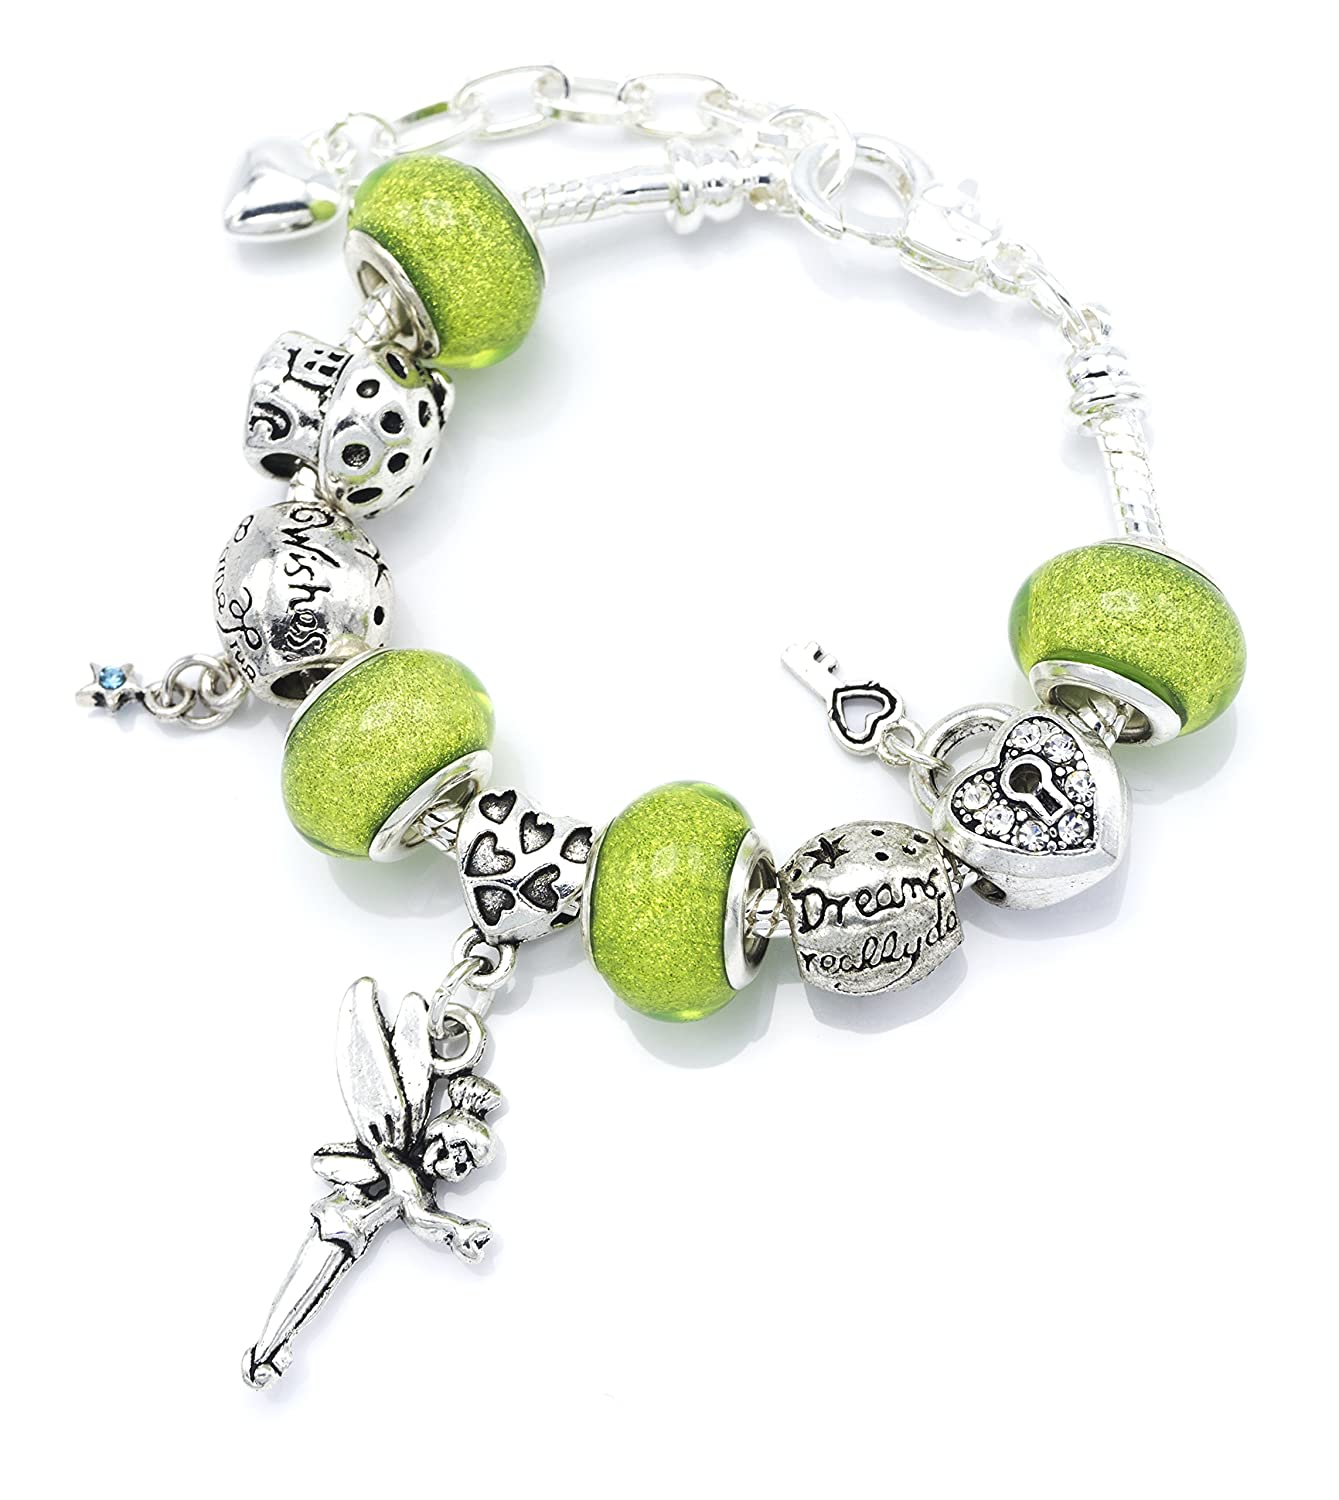 'Tinkerbell' Fairy Themed Charm Bracelet with Gift Box Girls Jewellery Jewellery Hut BRTINKERBELL